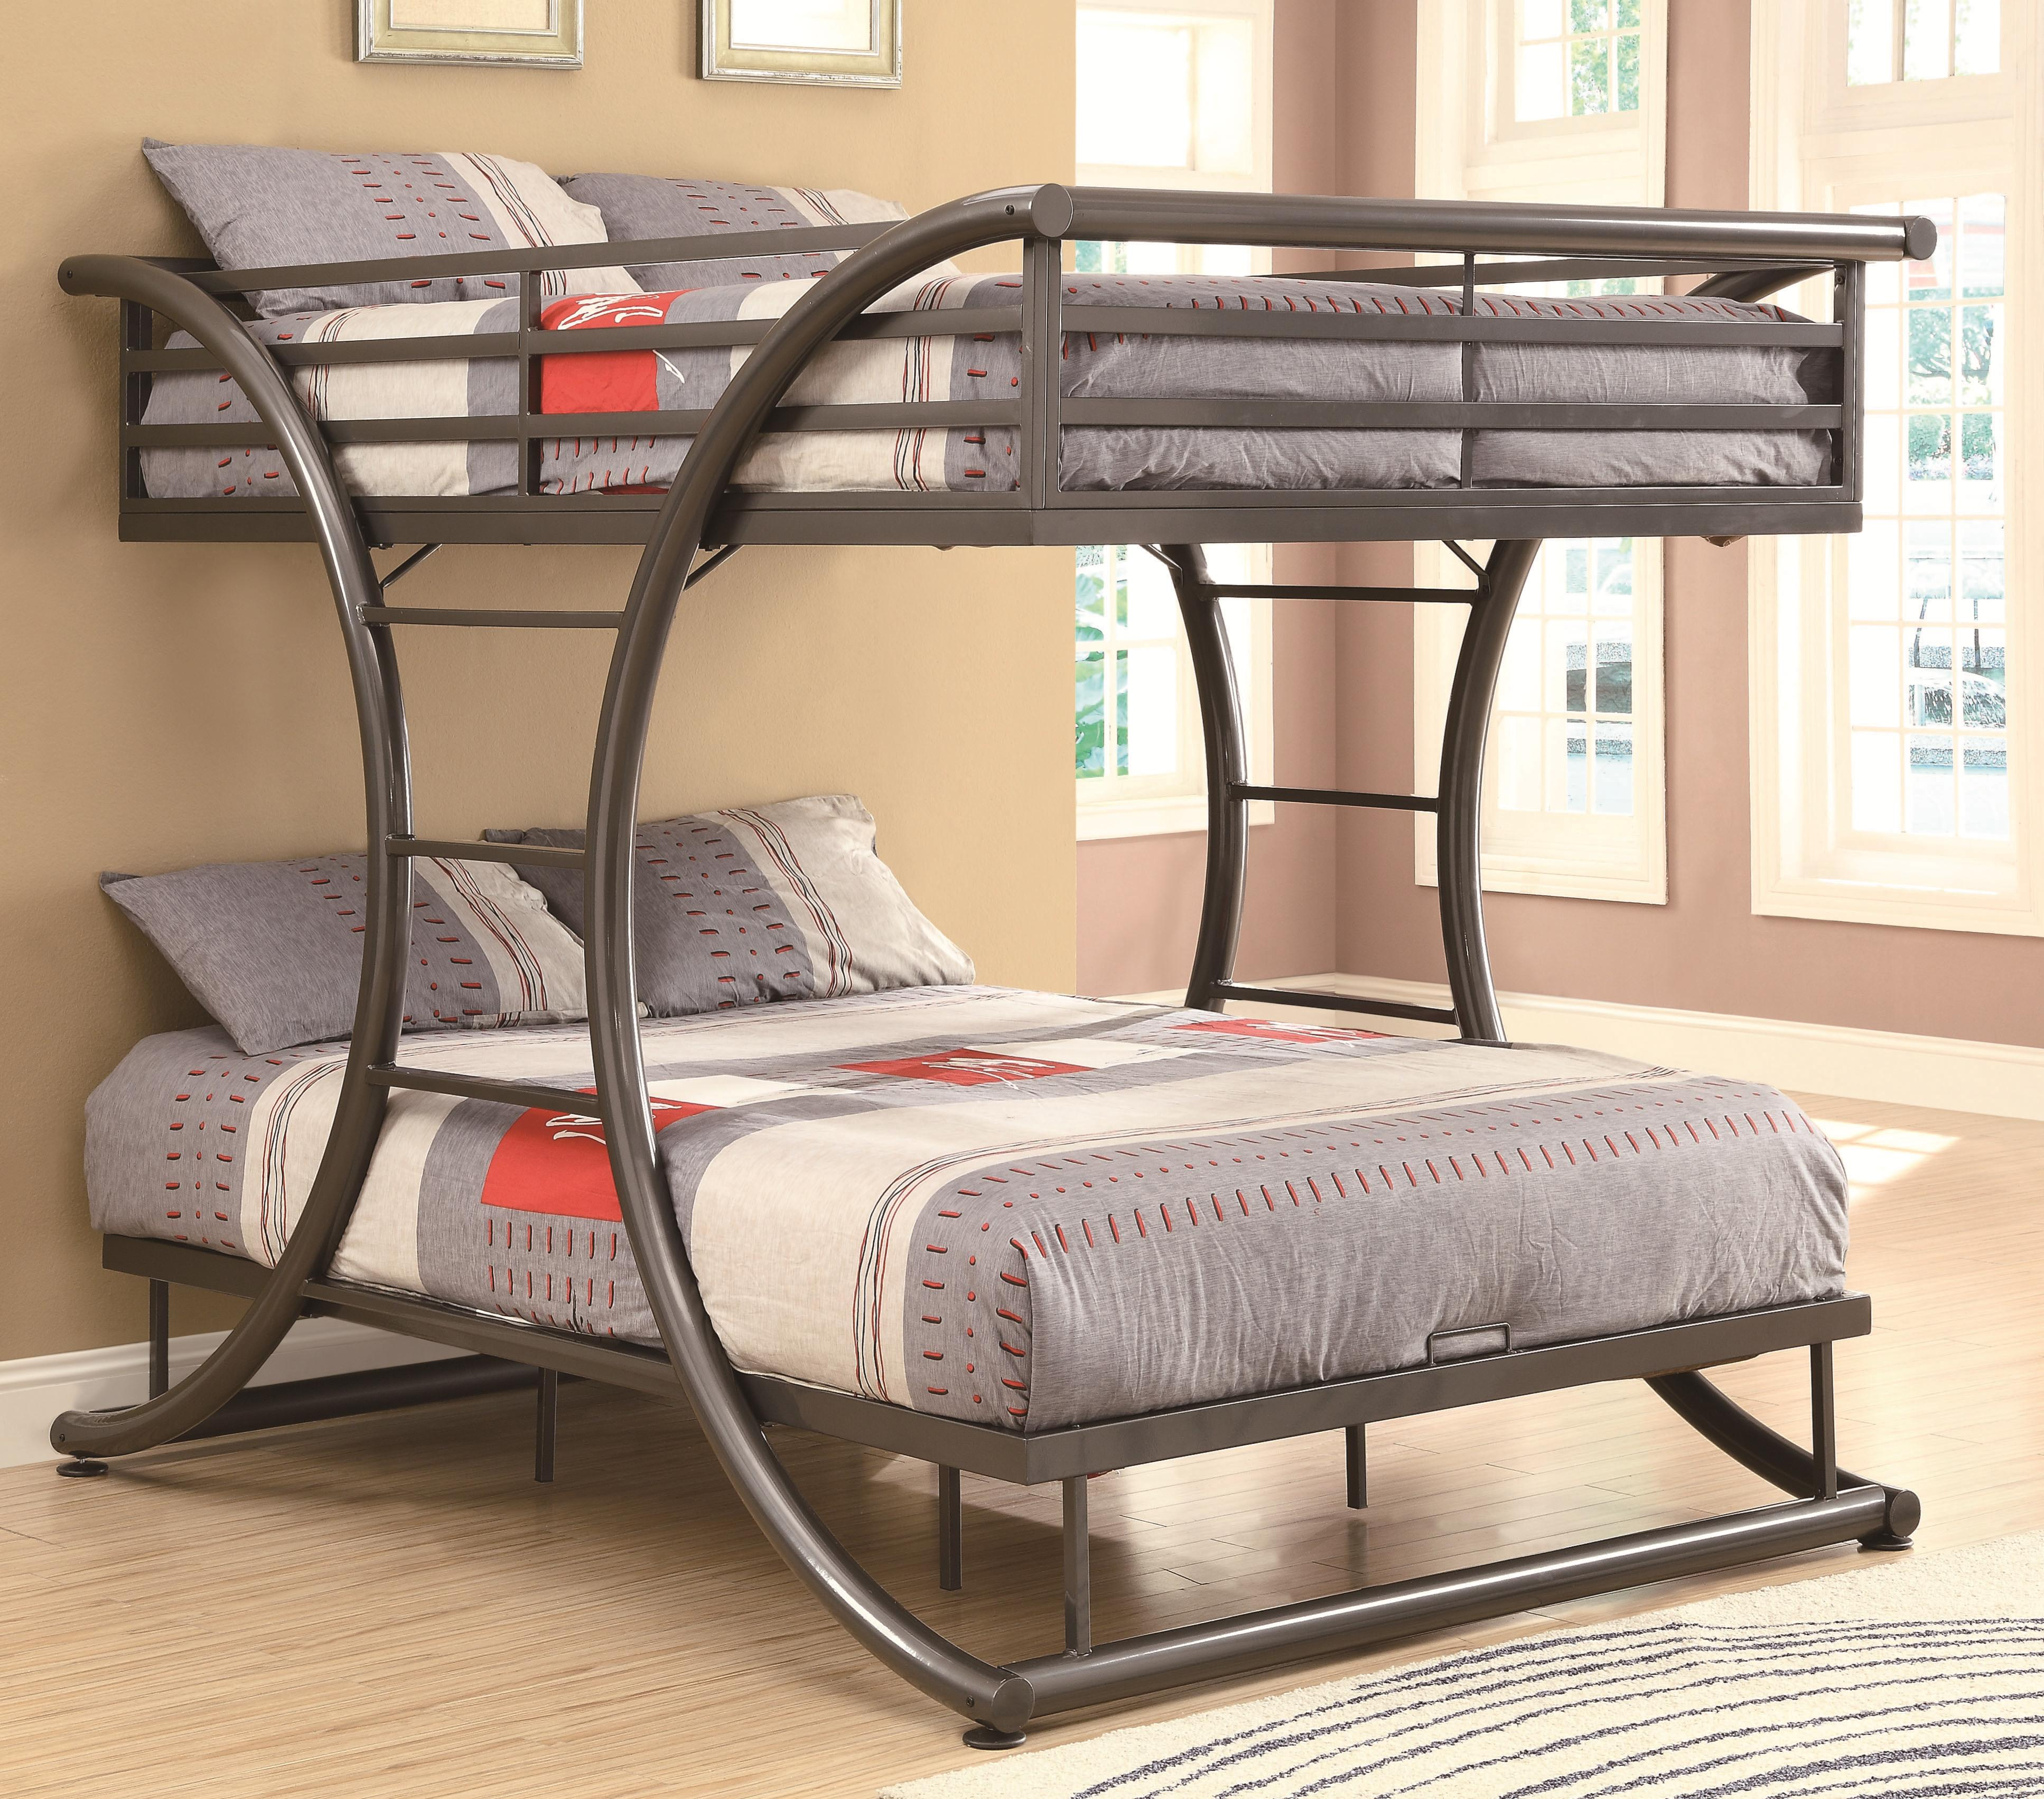 Double Bunks For Sale Bunks Full Over Full Contemporary Bunk Bed By Fine Furniture At Del Sol Furniture